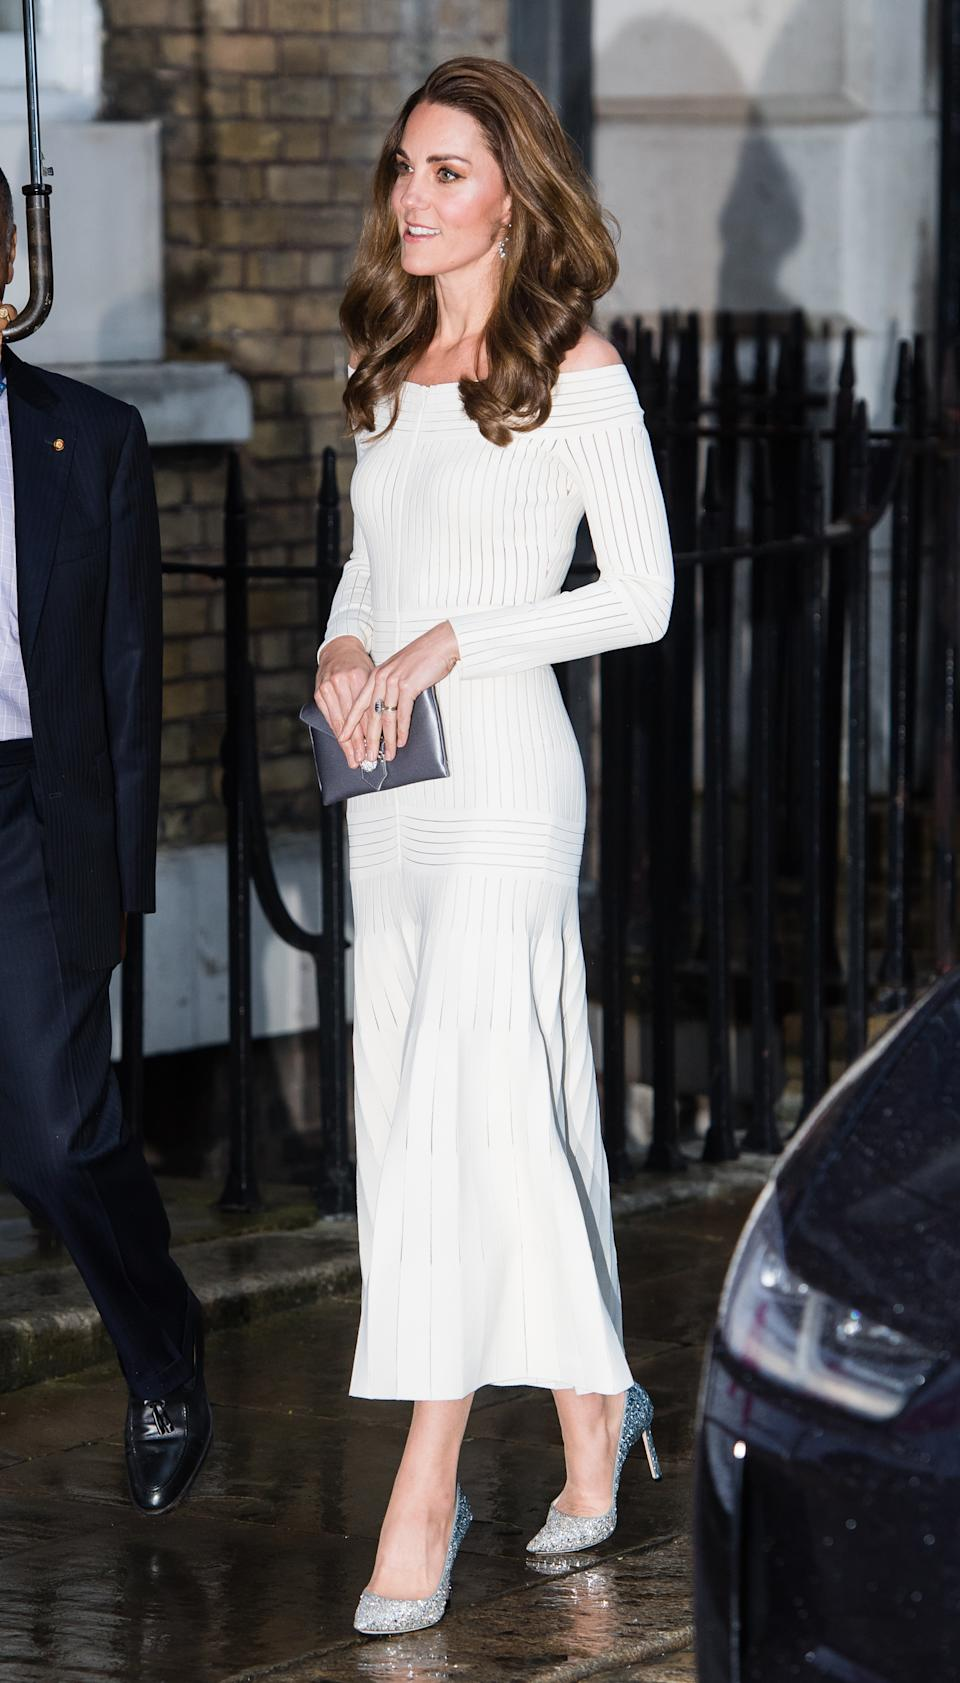 Kate brought back a fan favourite for the first annual gala dinner in recognition of Addiction Awareness Week - her off-the-shoulder Barbara Casasola dress with her glittery Jimmy Choo pumps and a new metallic clutch bag from Wilbur & Gussie. She accessorised with her Kiki McDonough topaz and diamond hoop earrings. [Photo: Getty]